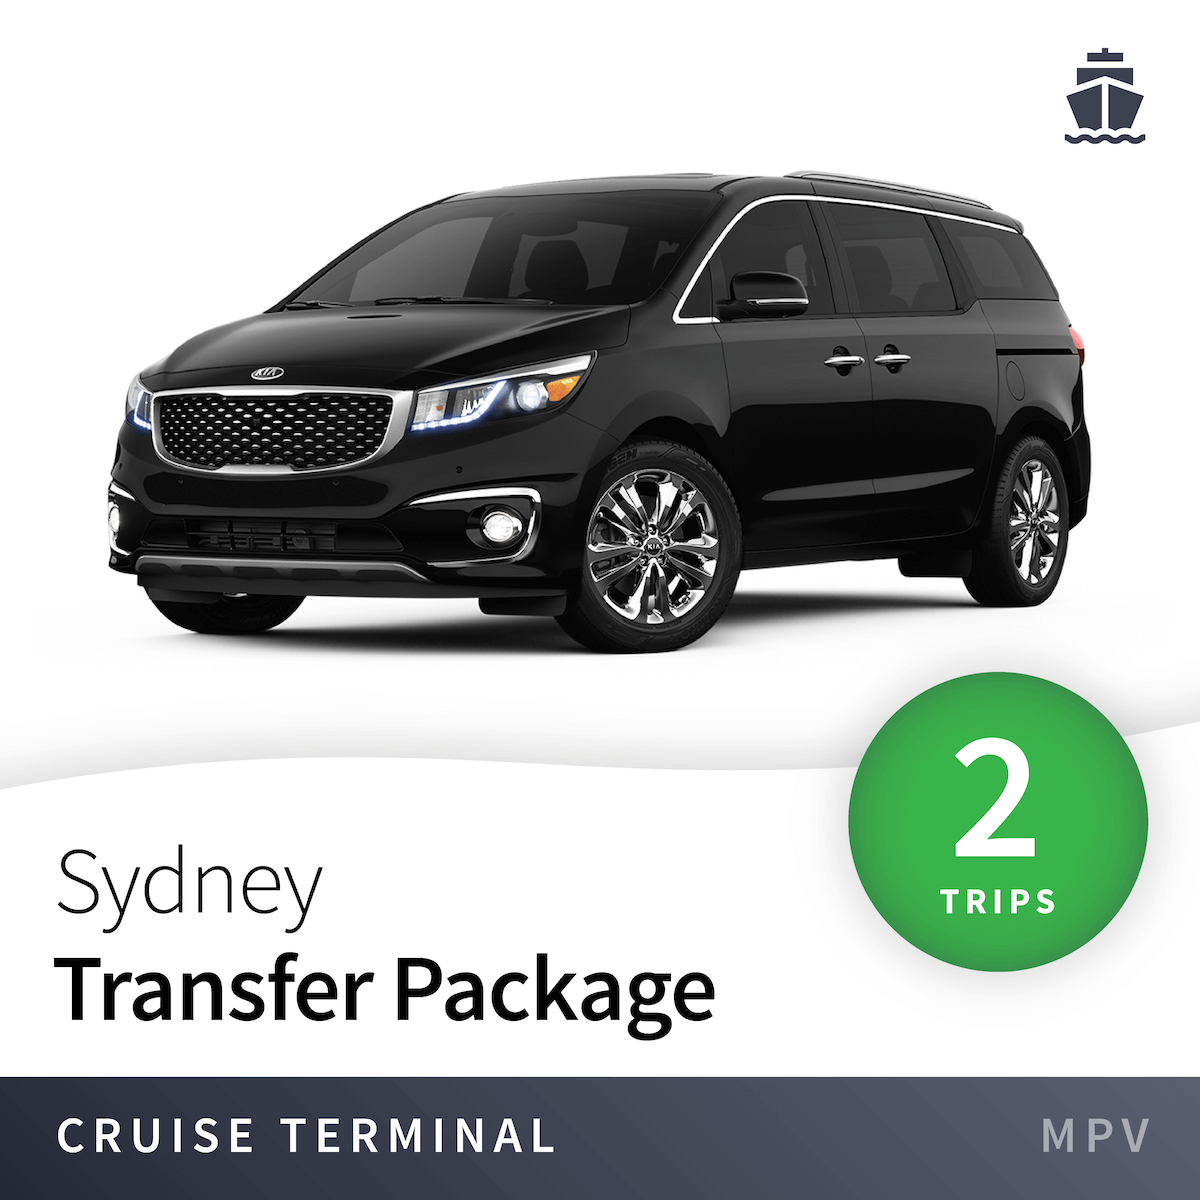 Sydney Cruise Terminal Transfer Package - MPV (2 Trips) 1